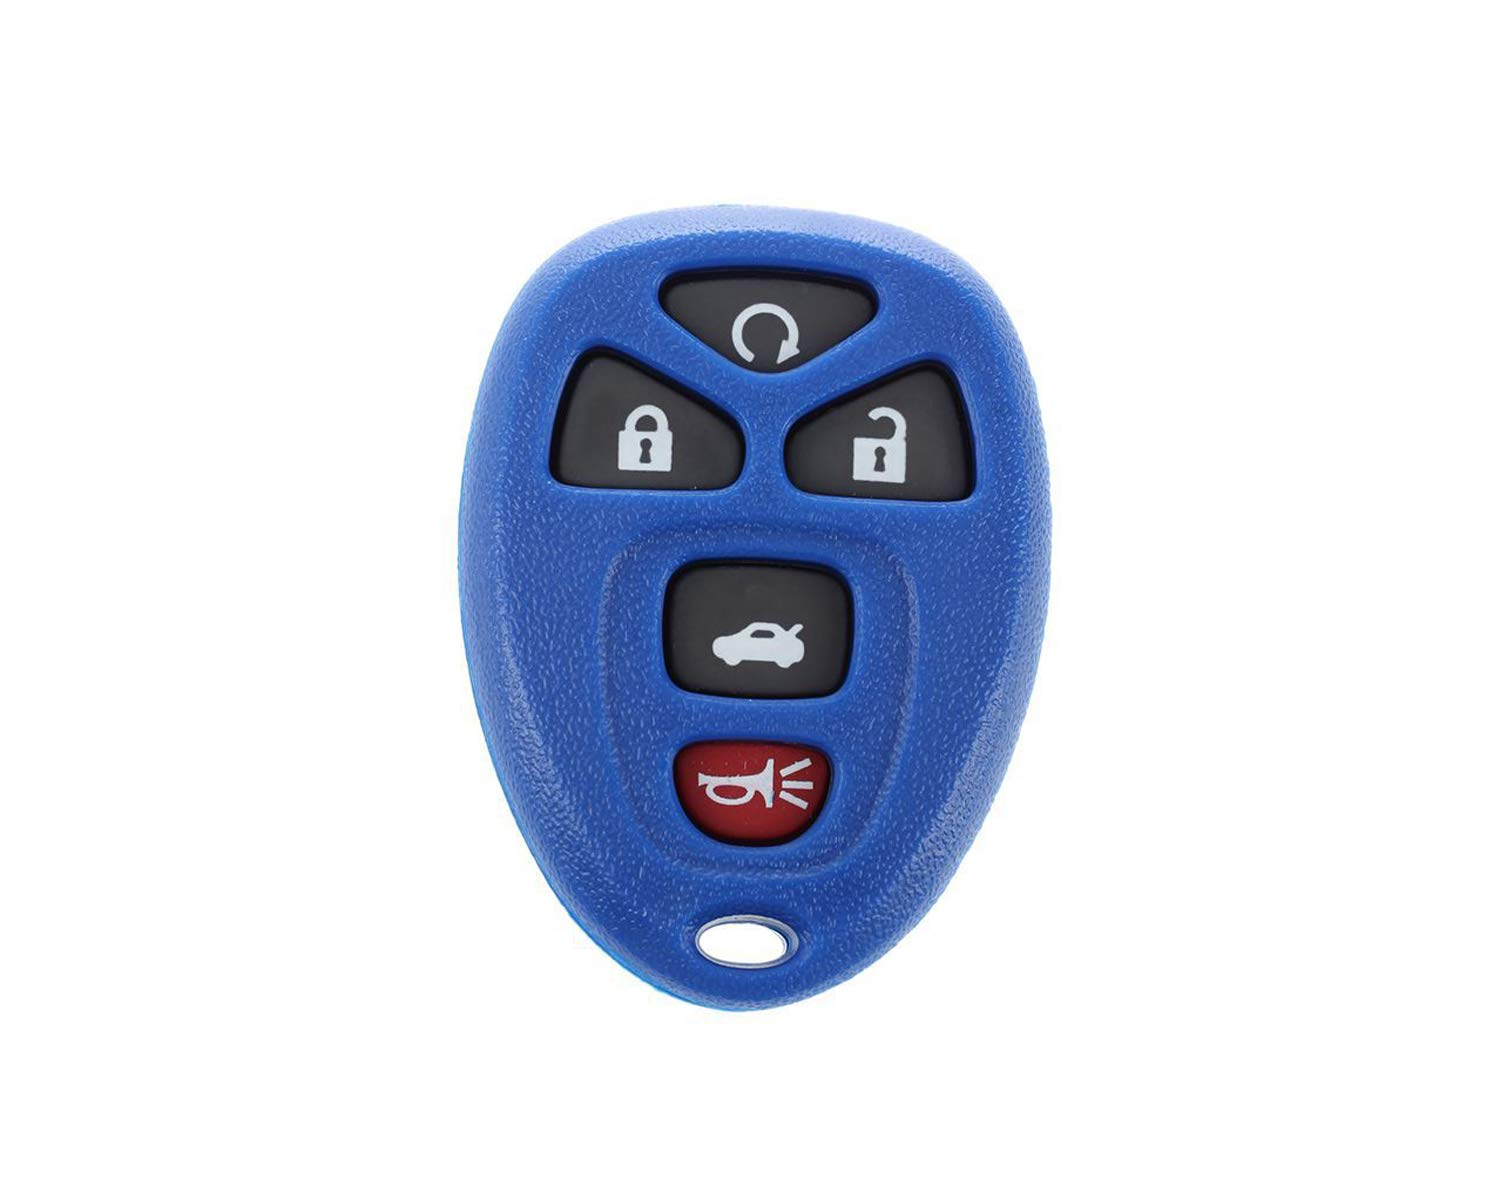 CanadaAutomotiveSupply /© 1 New Replacement BLUE Keyless Entry 5 Button SHELL Remote Start Car Key Fob for Select Chevrolet Buick Saturn 22733524 Pontiac